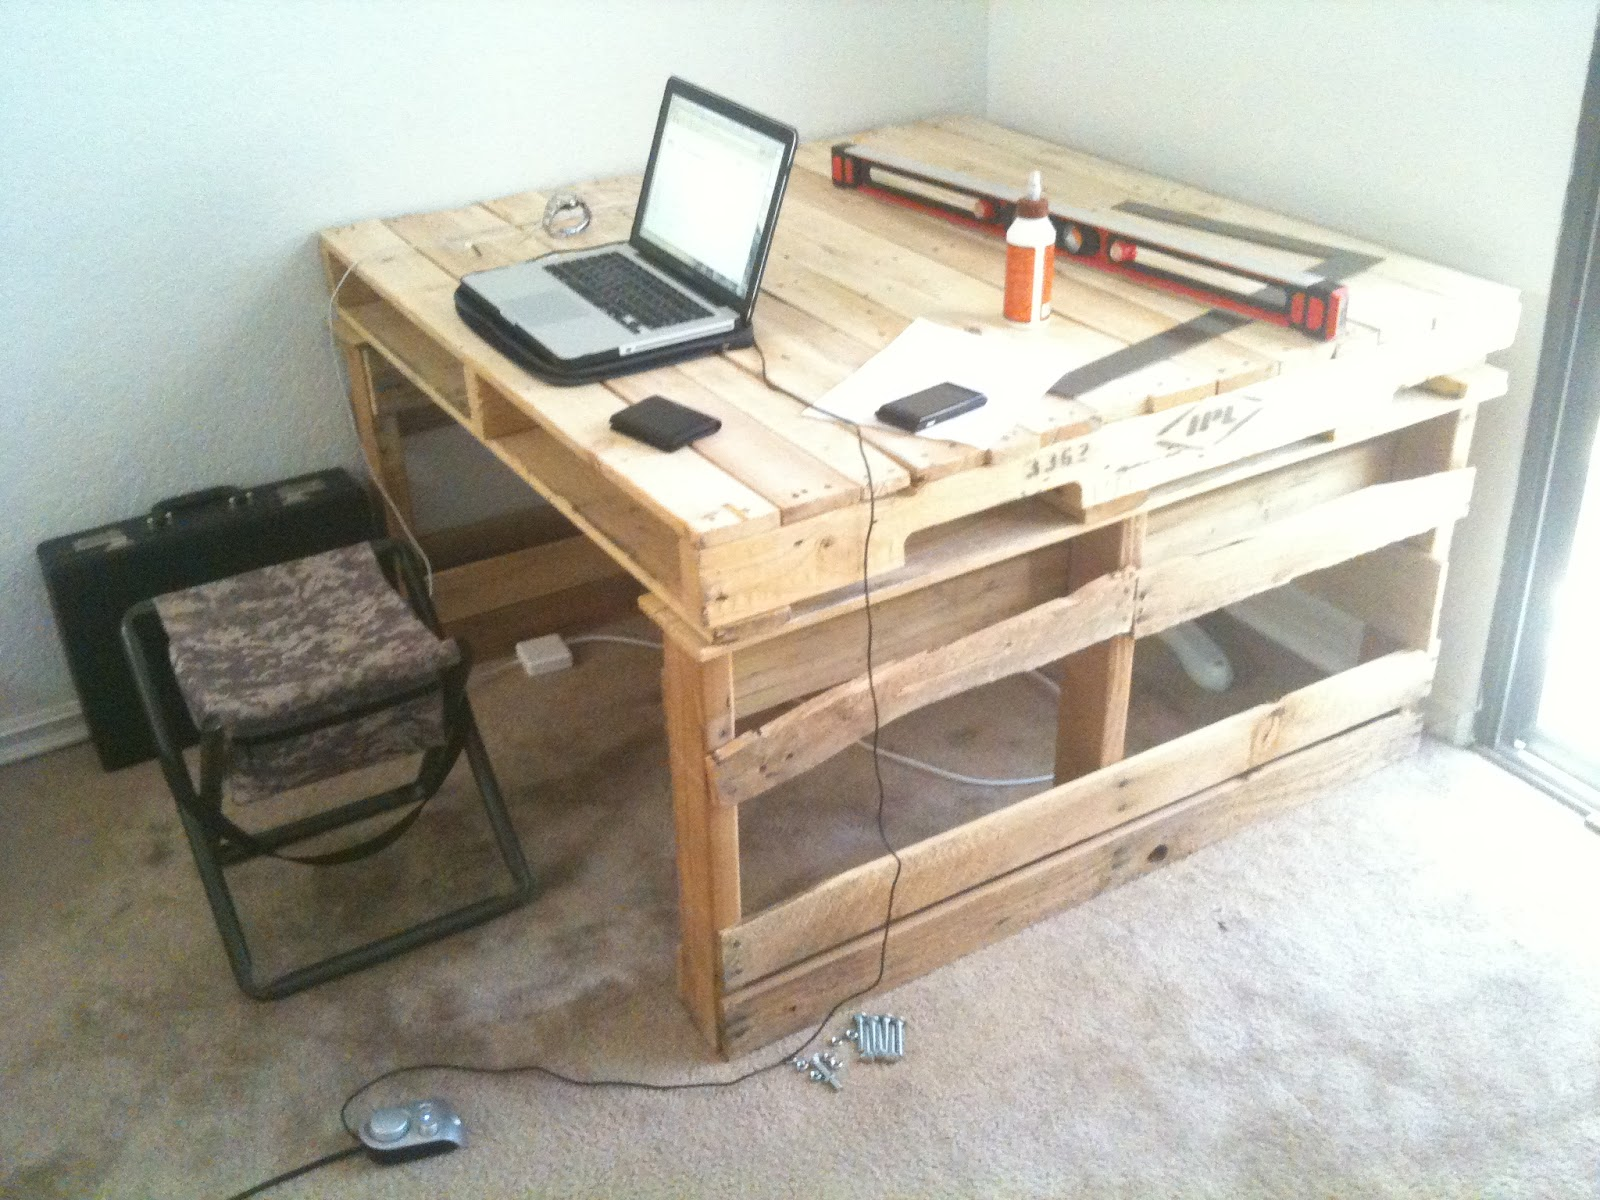 Making Pallet Furniture | Technoloid